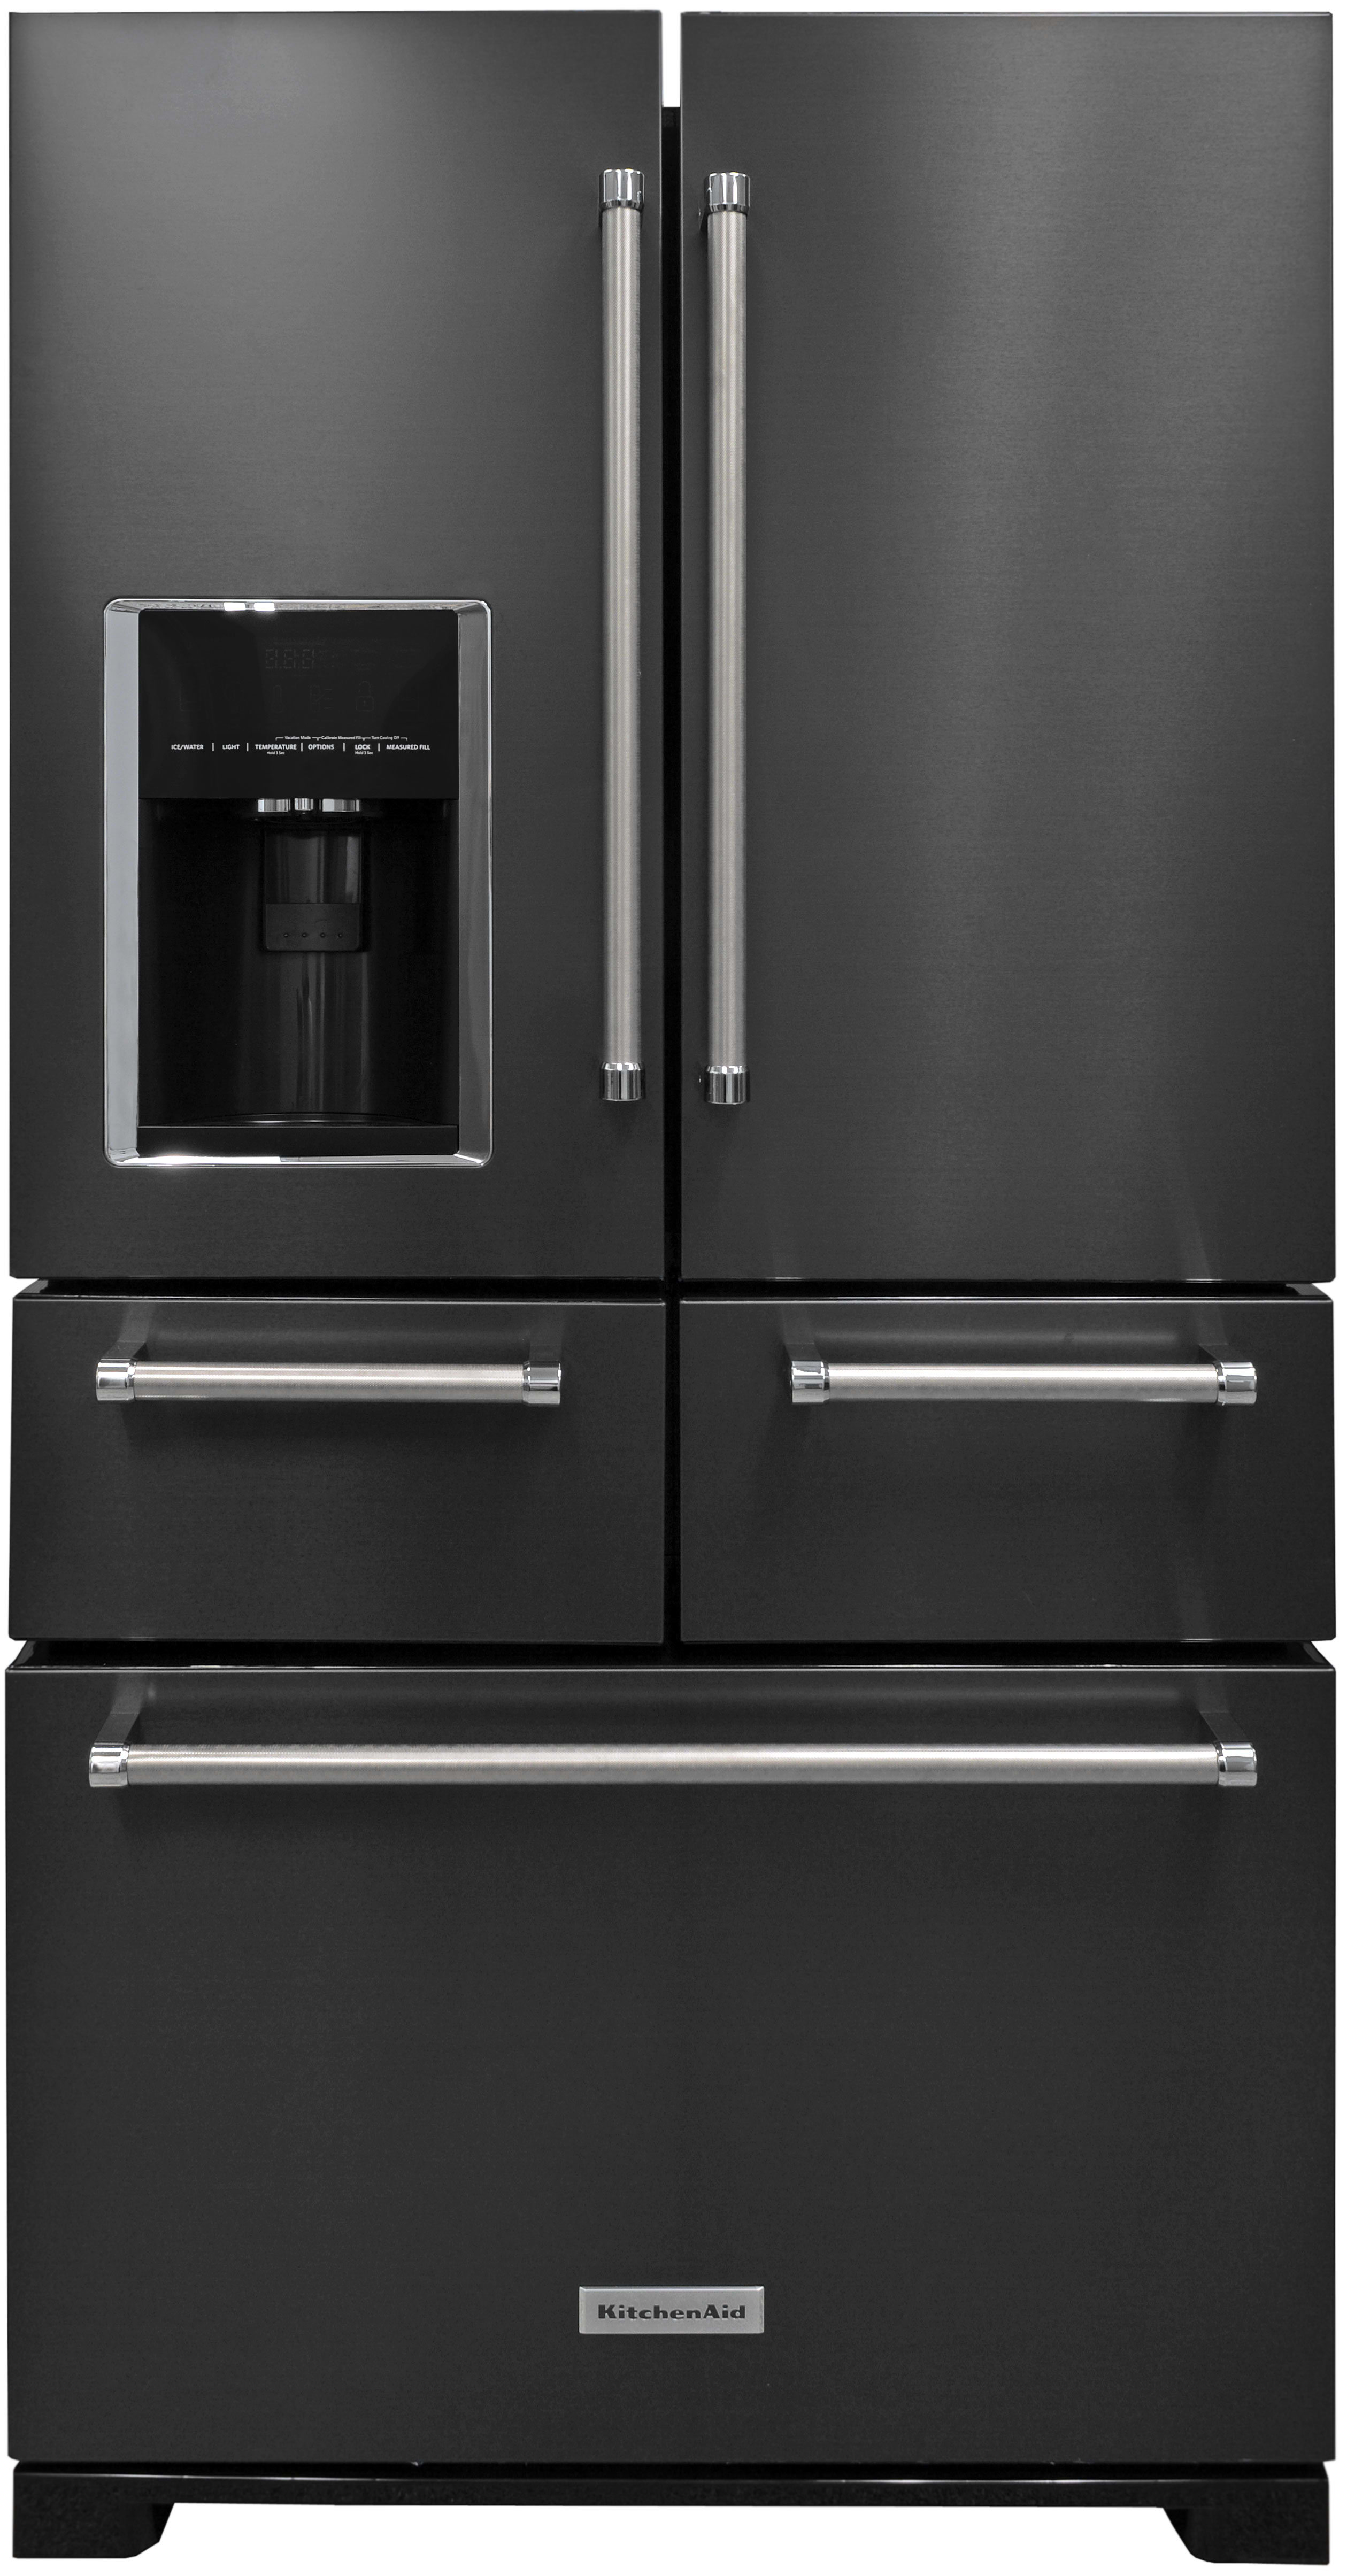 The KitchenAid KRMF706EBS: A Five Door, Black Stainless Steel Fridge?  Sounds Crazy